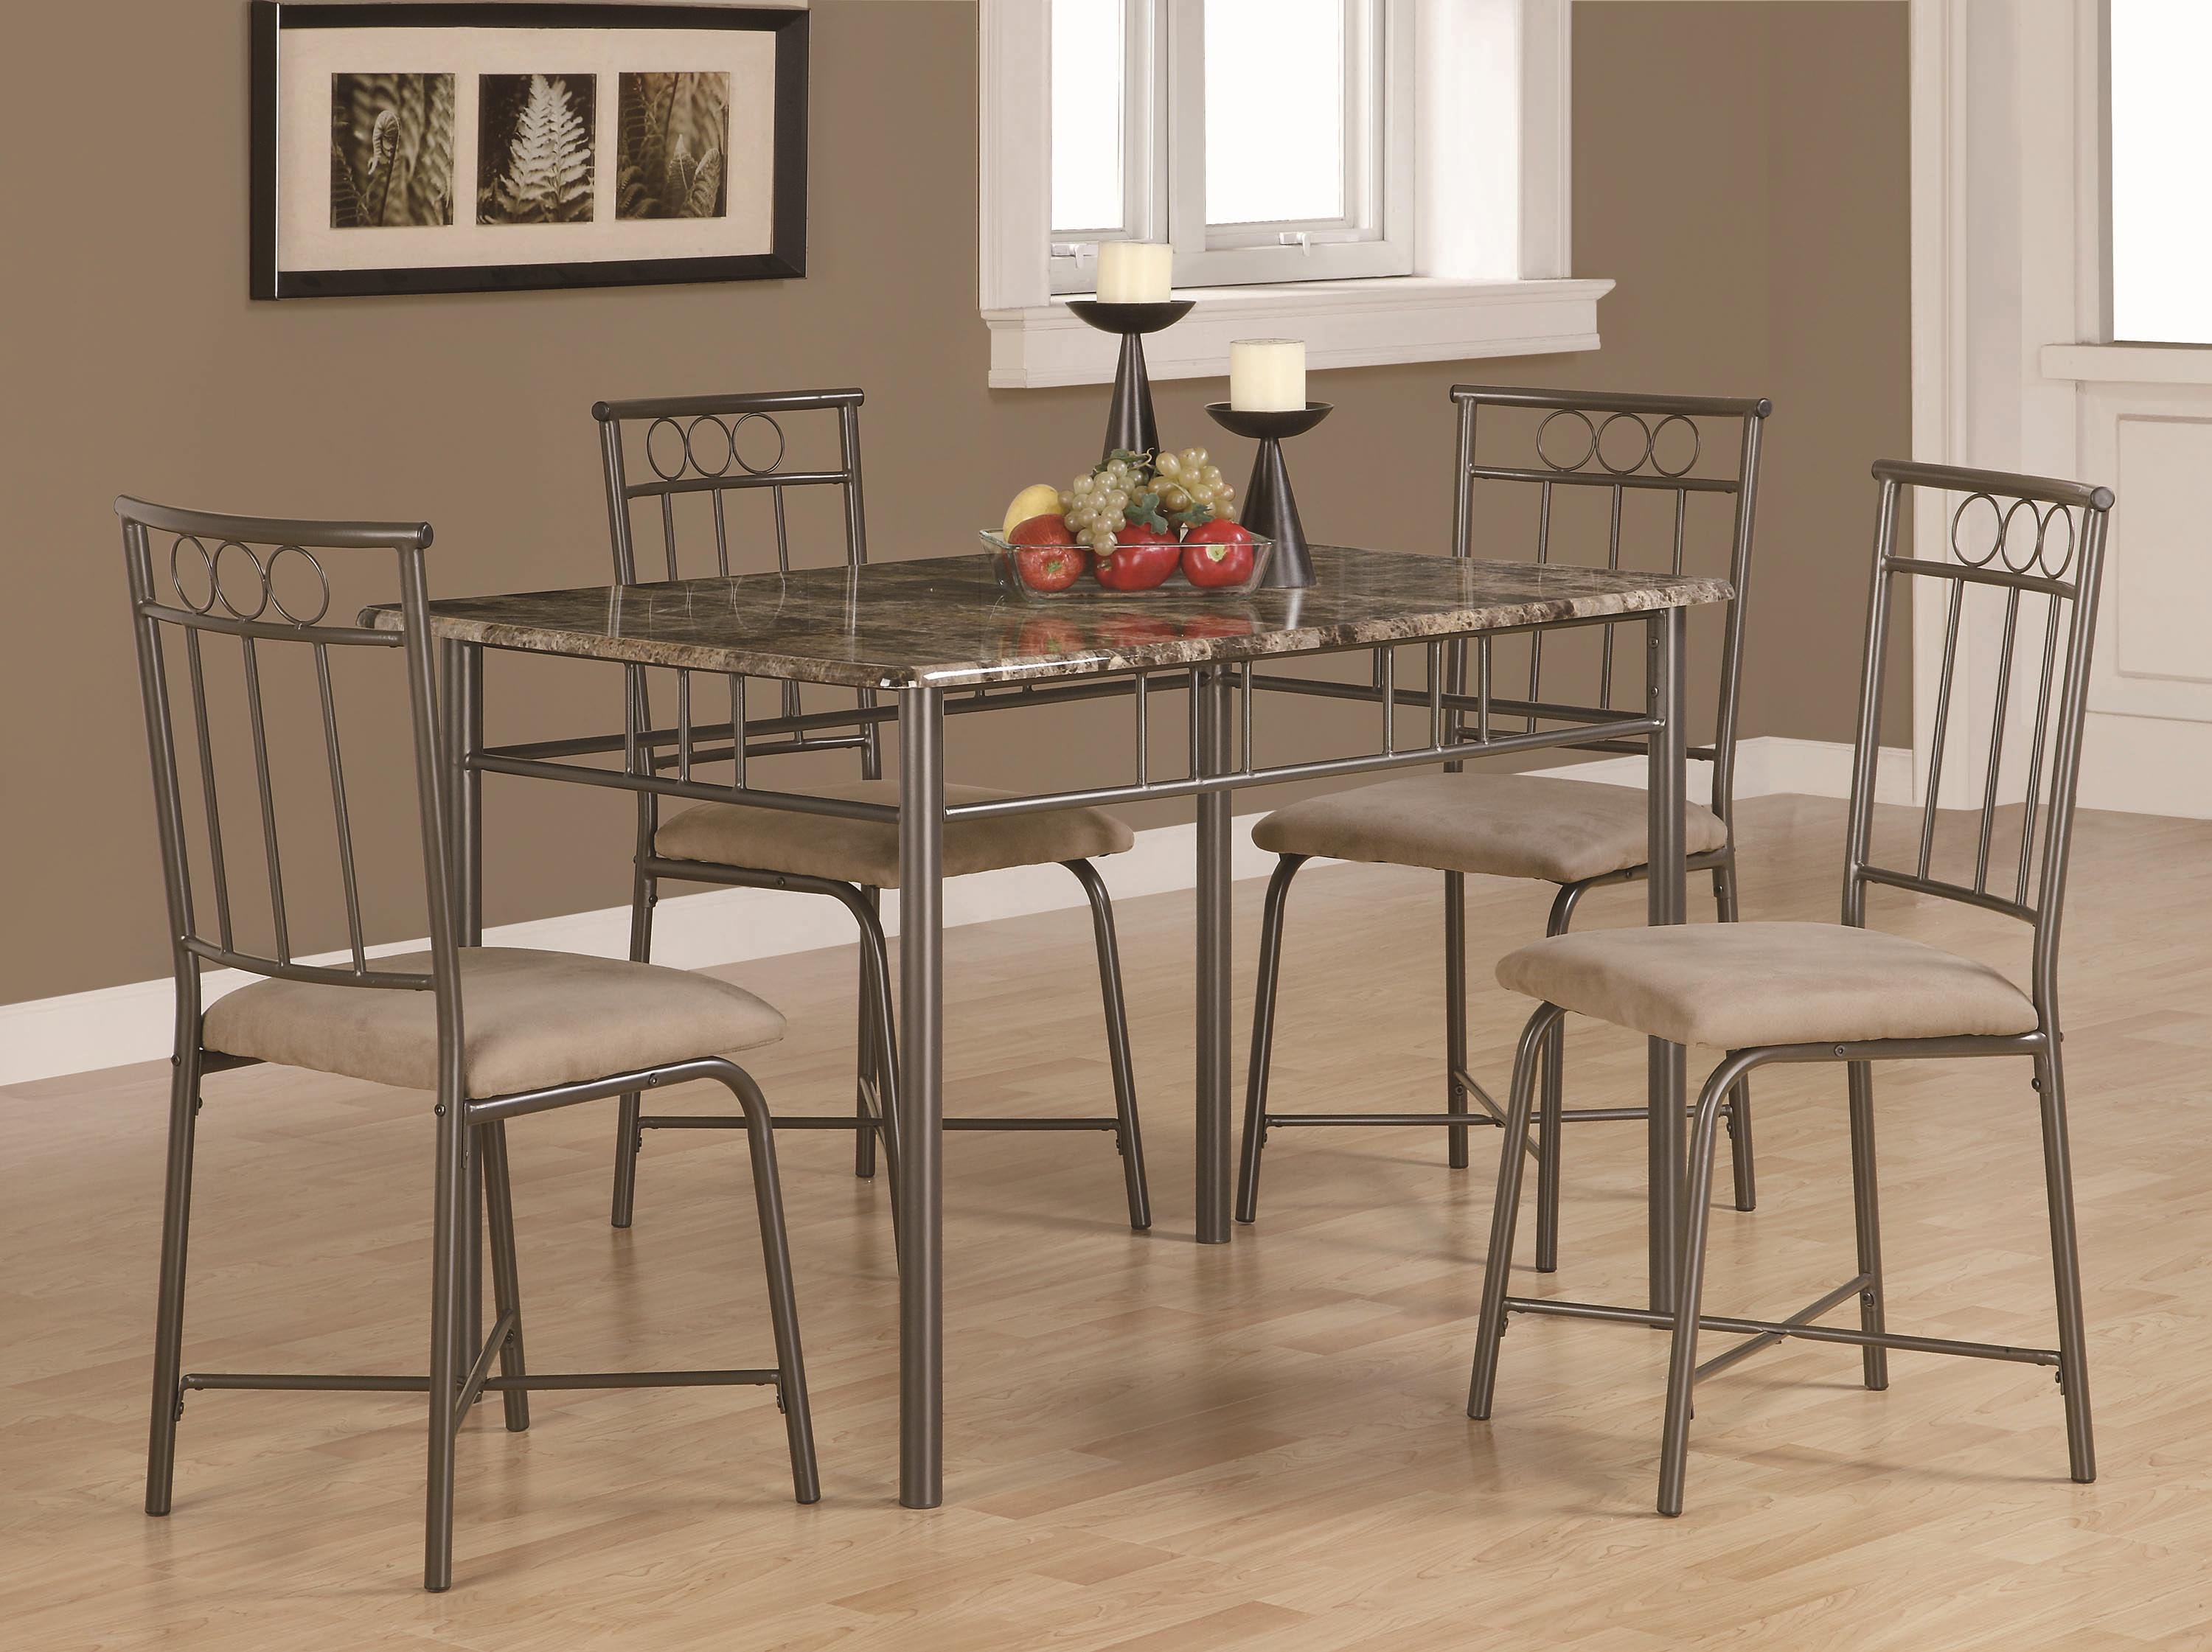 Coaster Dinettes 5 Piece Dining Set   Item Number: 150114